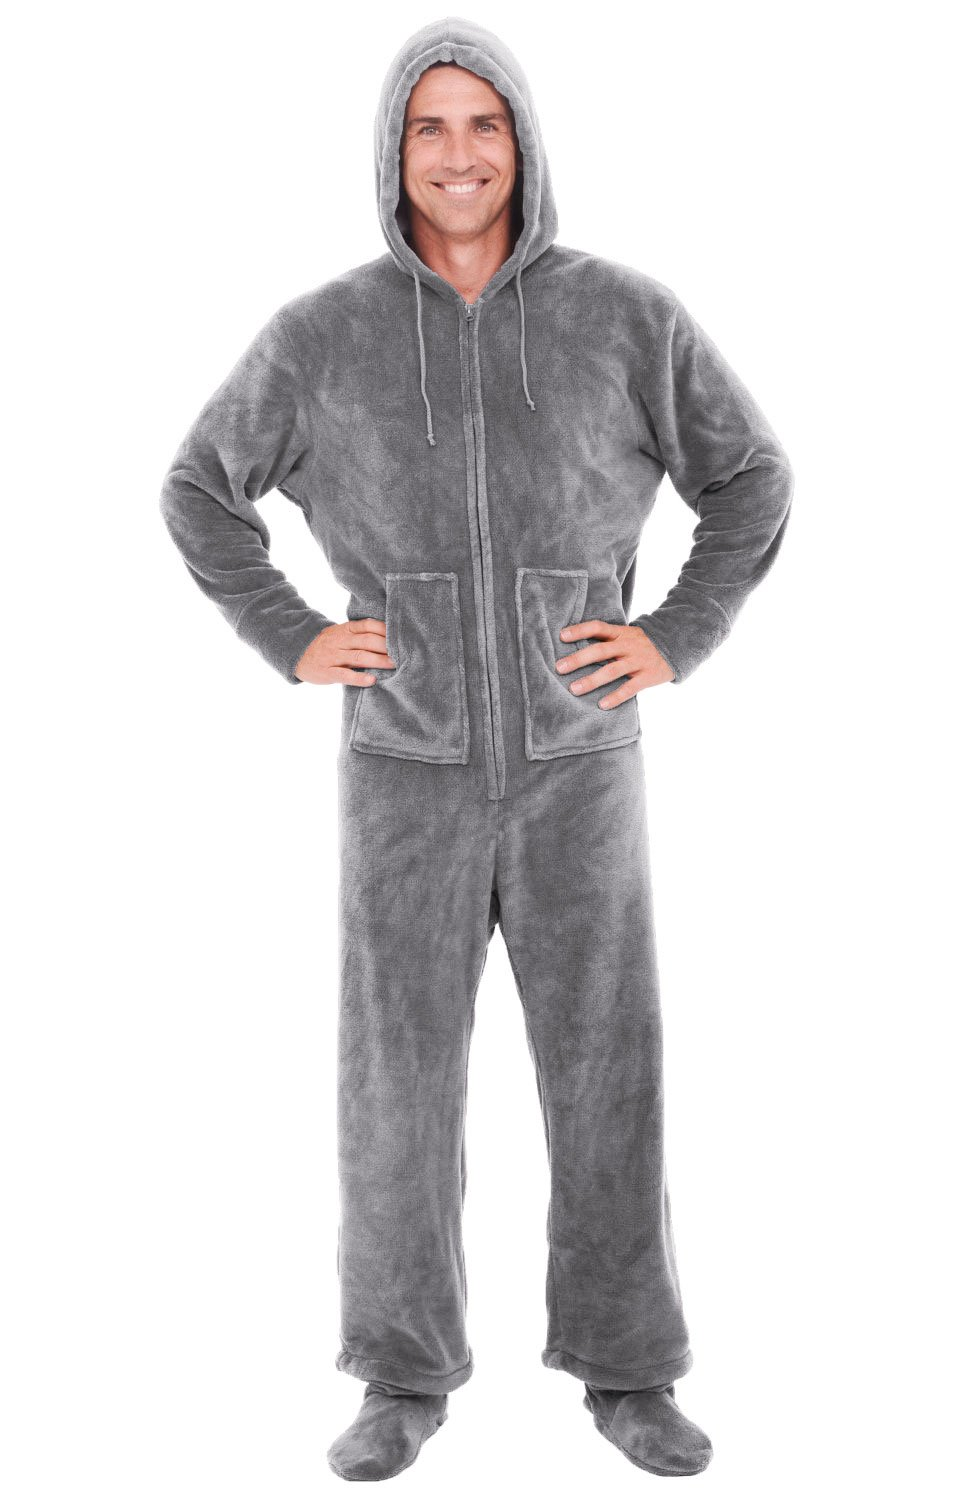 Del Rossa Microfleece Footed Pajamas, Steel, Large (A0320STLLG)